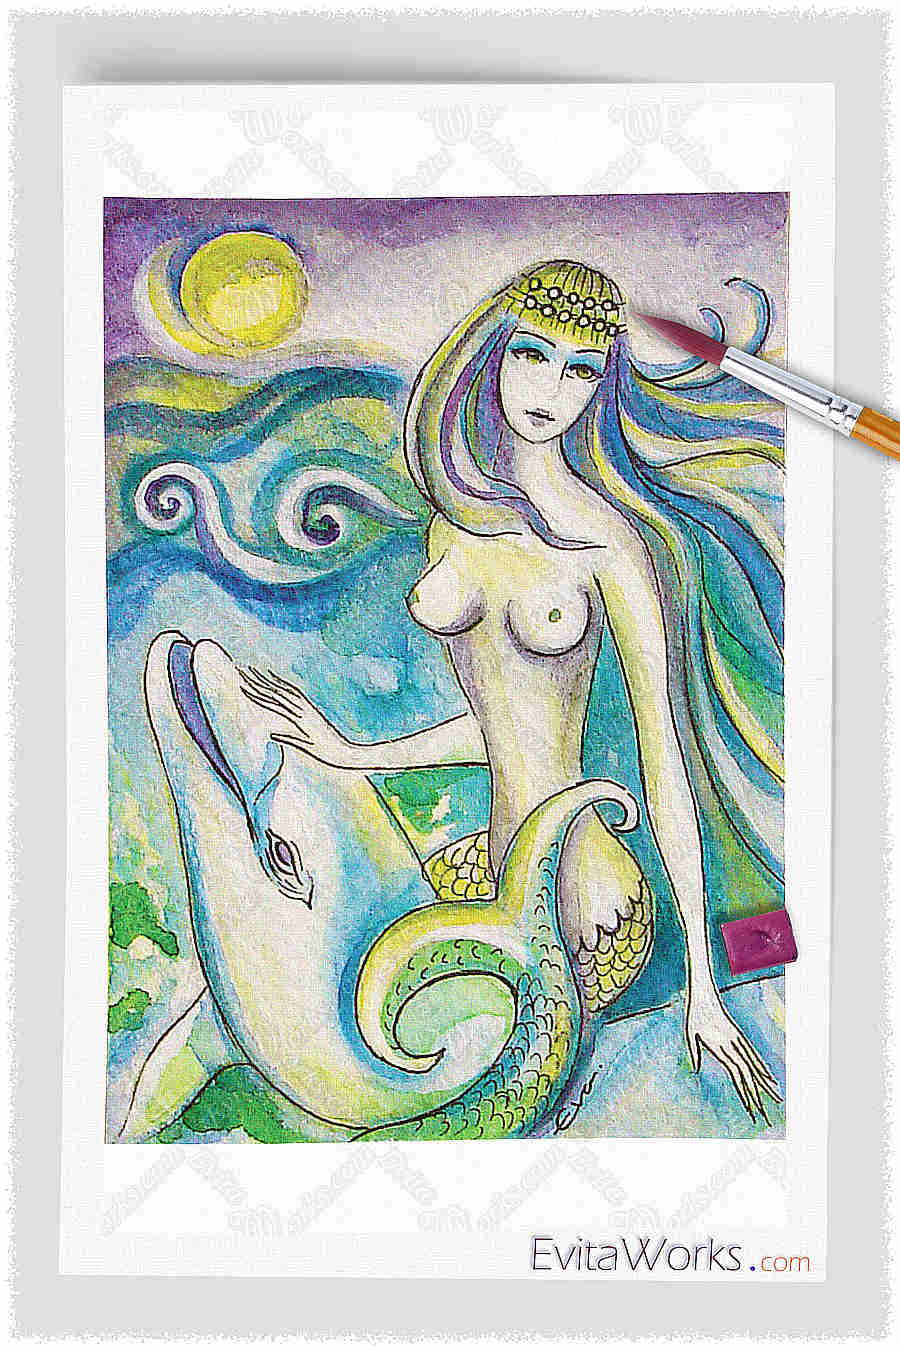 Mermaid 13 ~ EvitaWorks